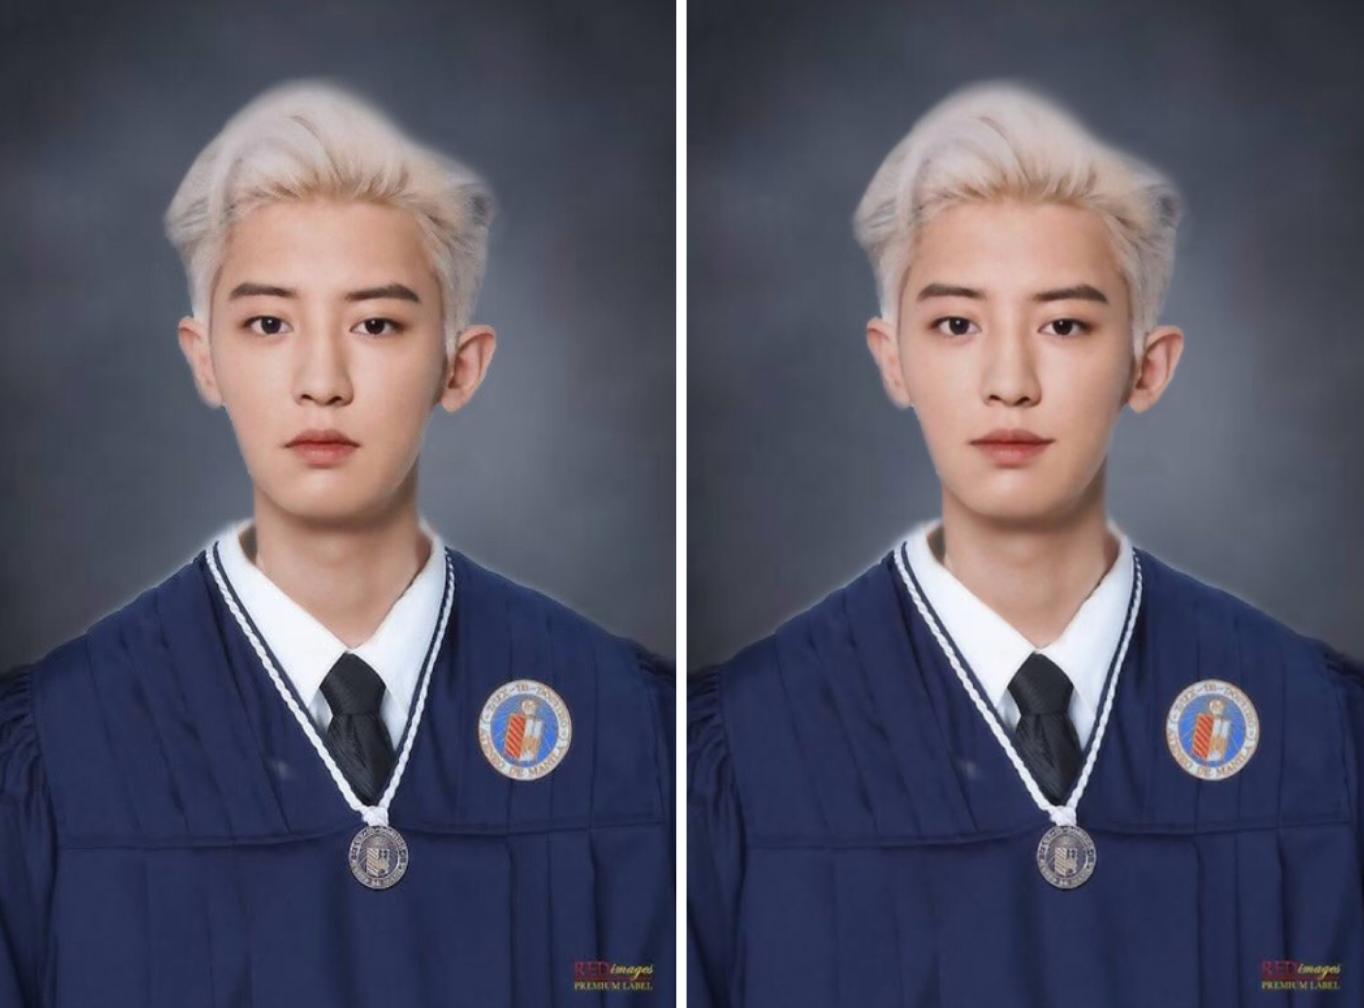 park chanyeol in a university graduation gown